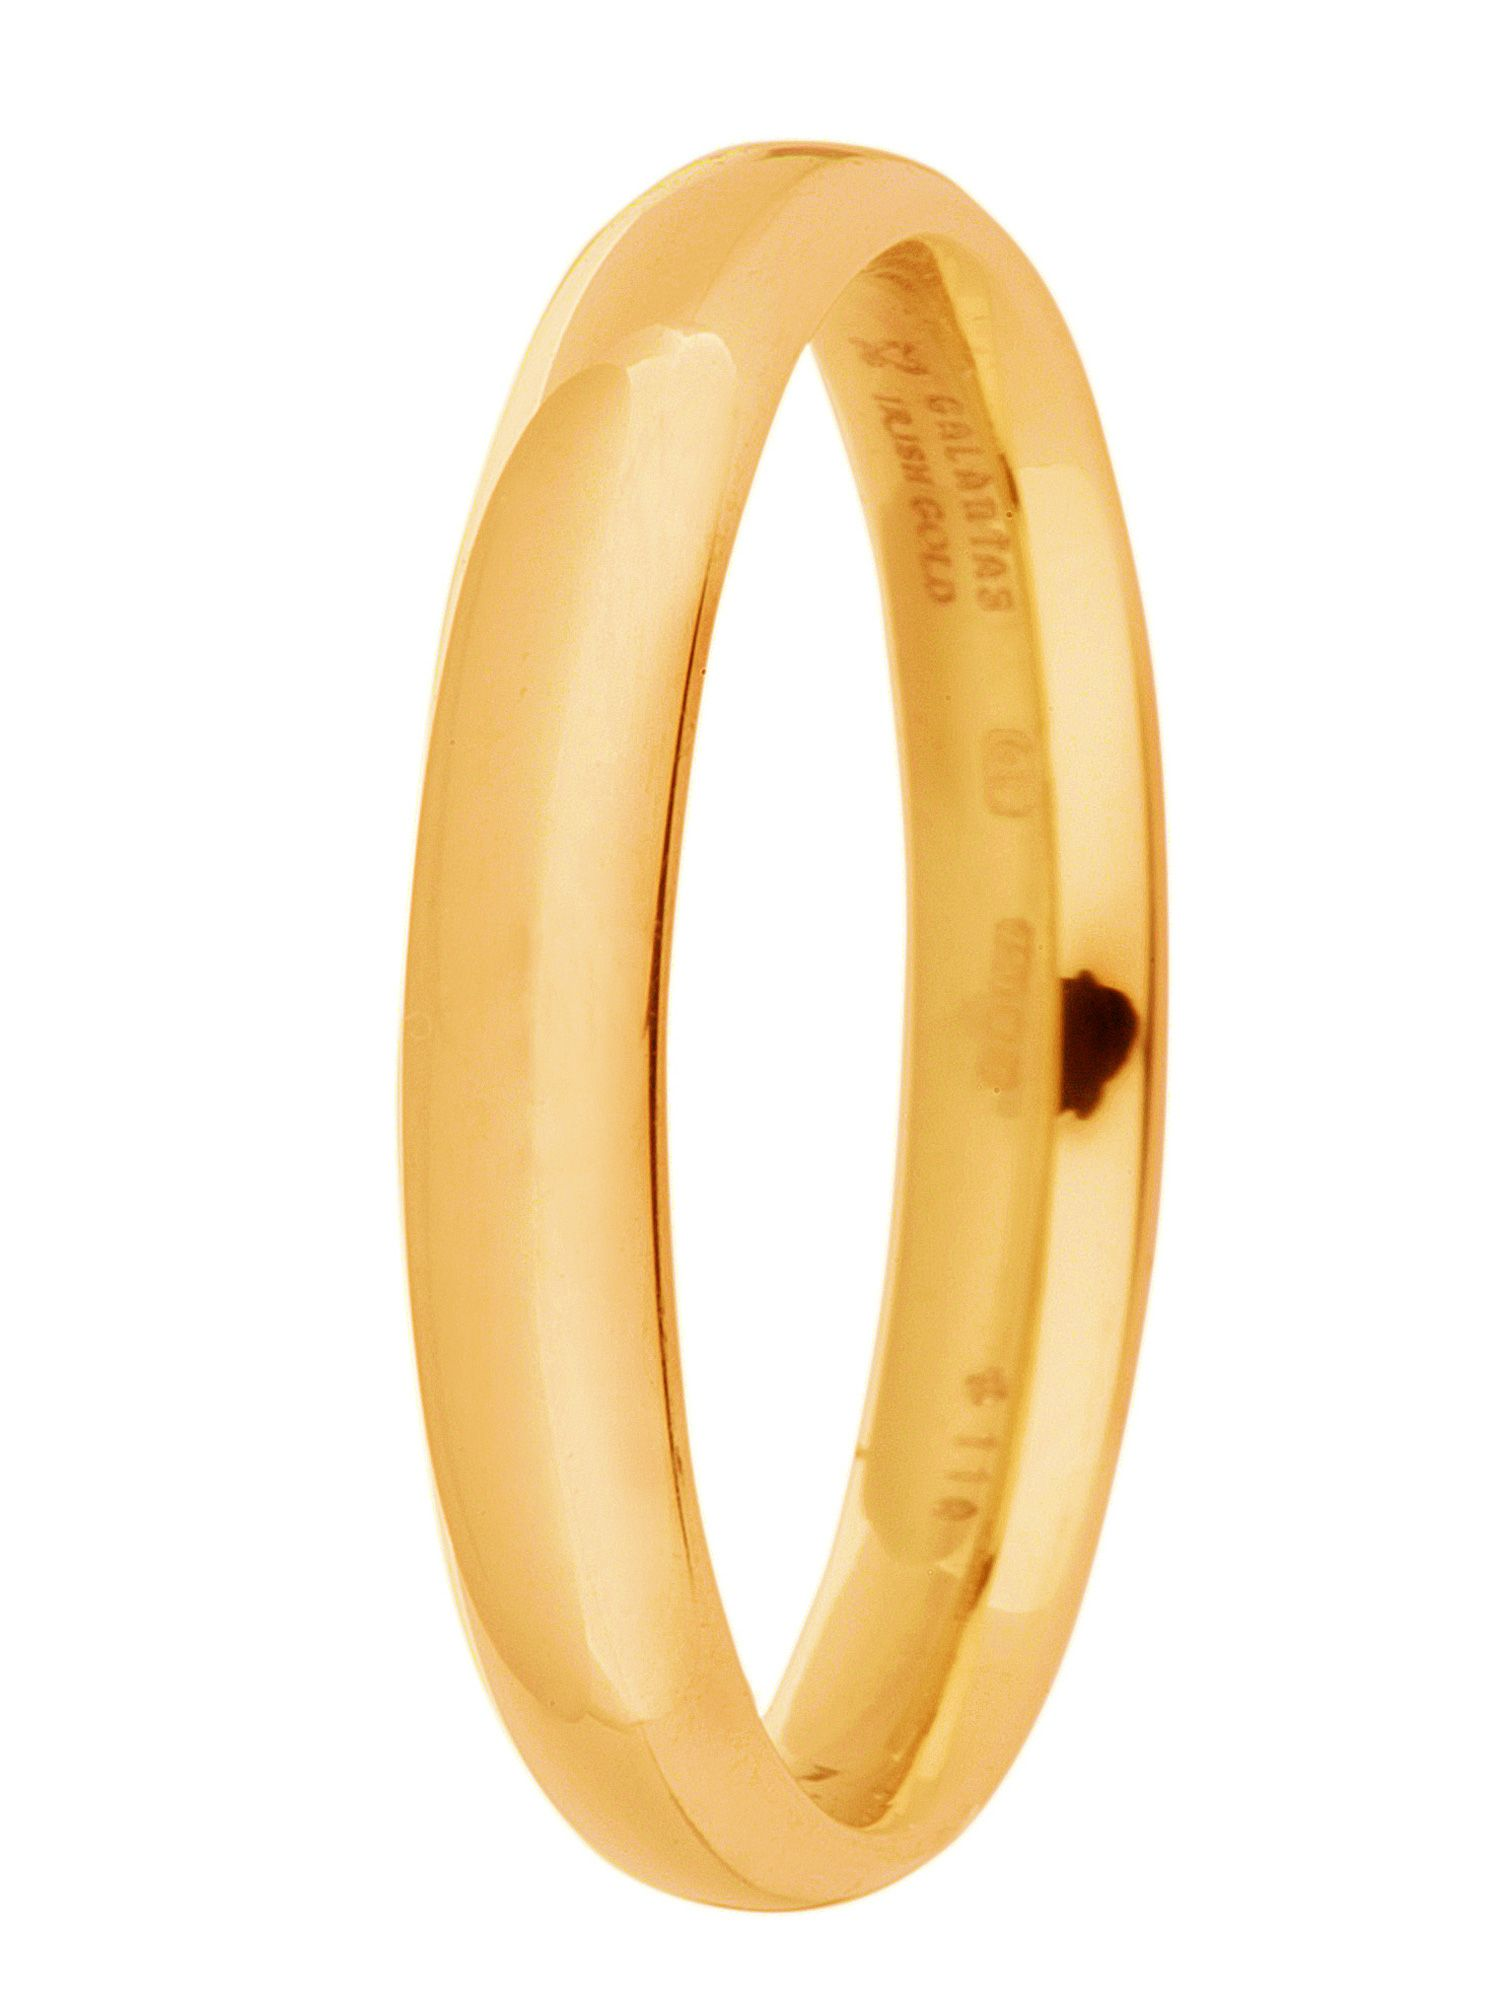 Brides 9ct gold 3mm court wedding ring - Gold